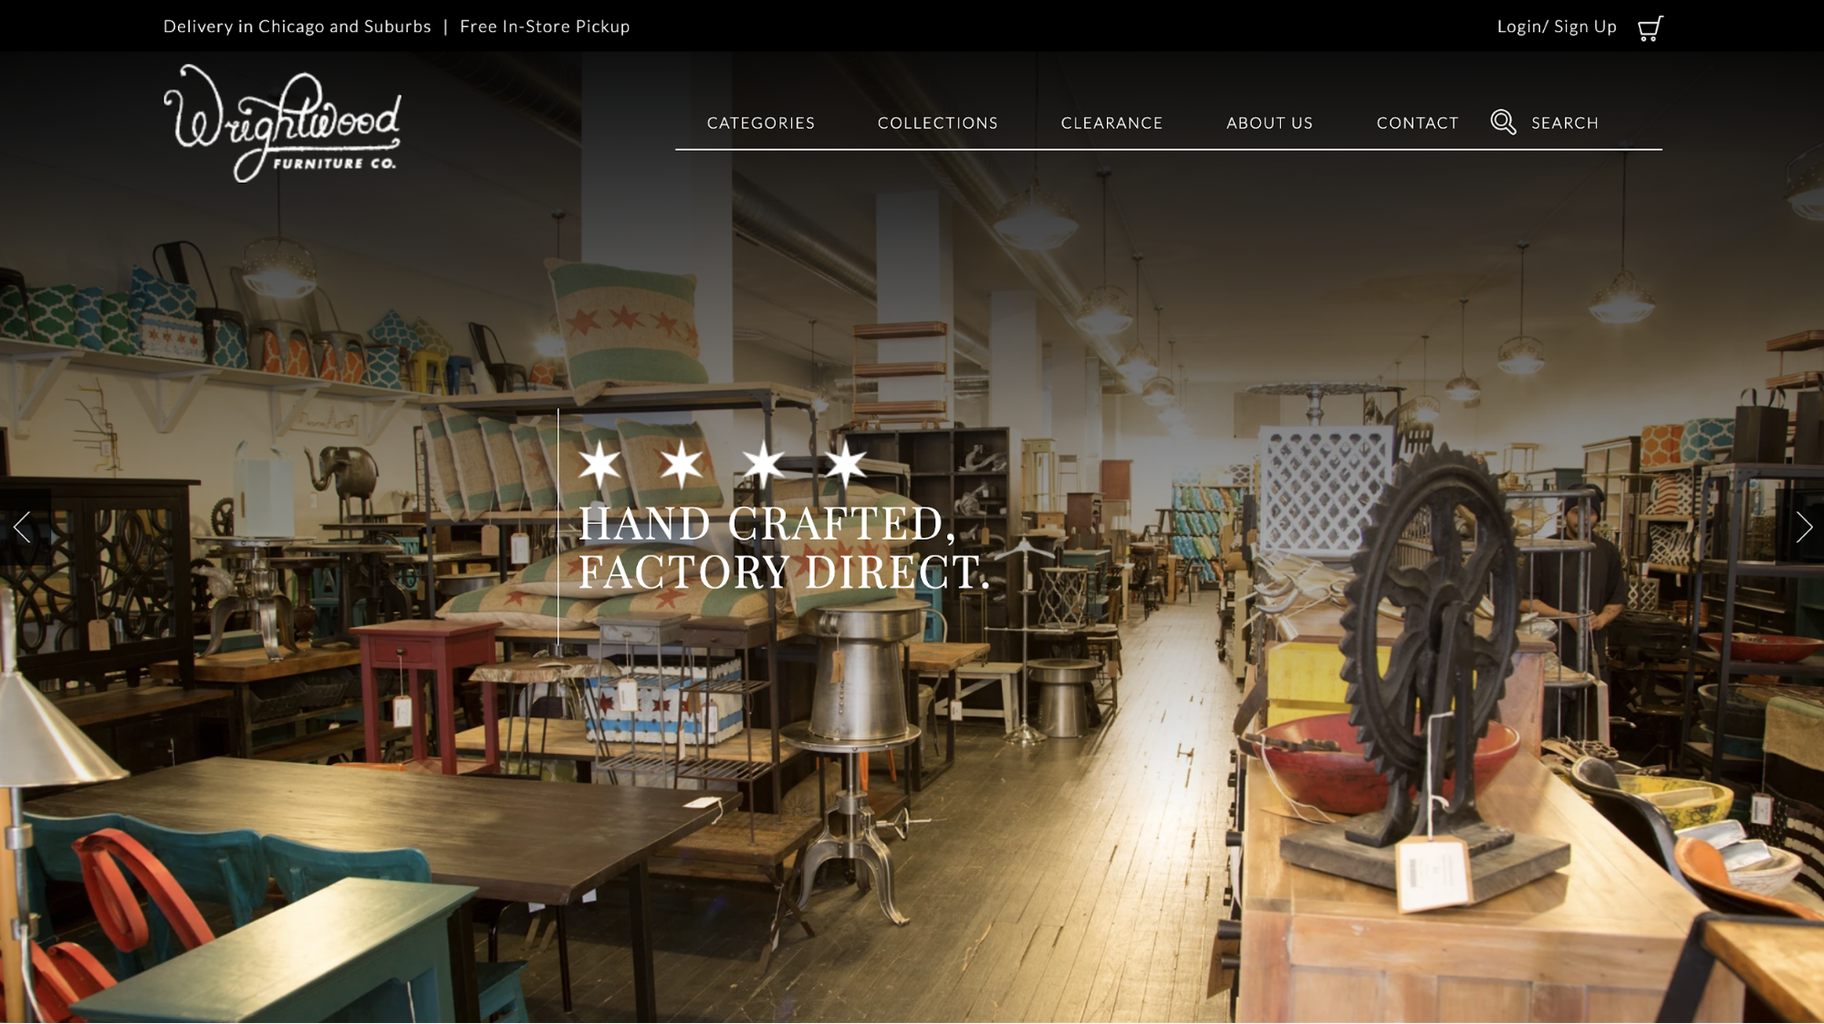 Small Business Website Example: Wrightwood Furniture